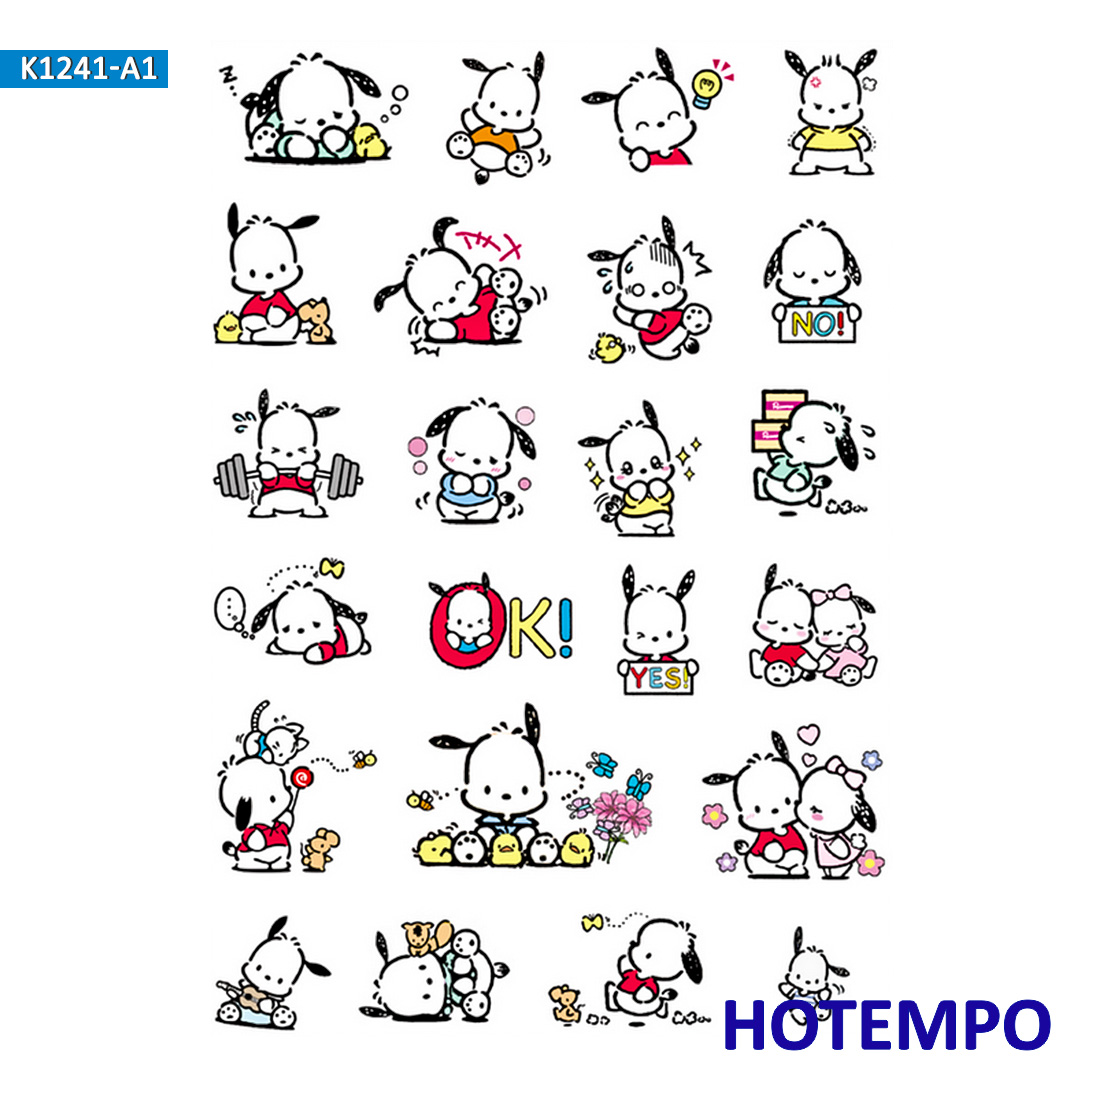 Anime Pochacco Dog Cartoon Cute Stickers For Girl Children Kids Gift DIY Letter Diary Scrapbooking Stationery Pegatinas Stickers